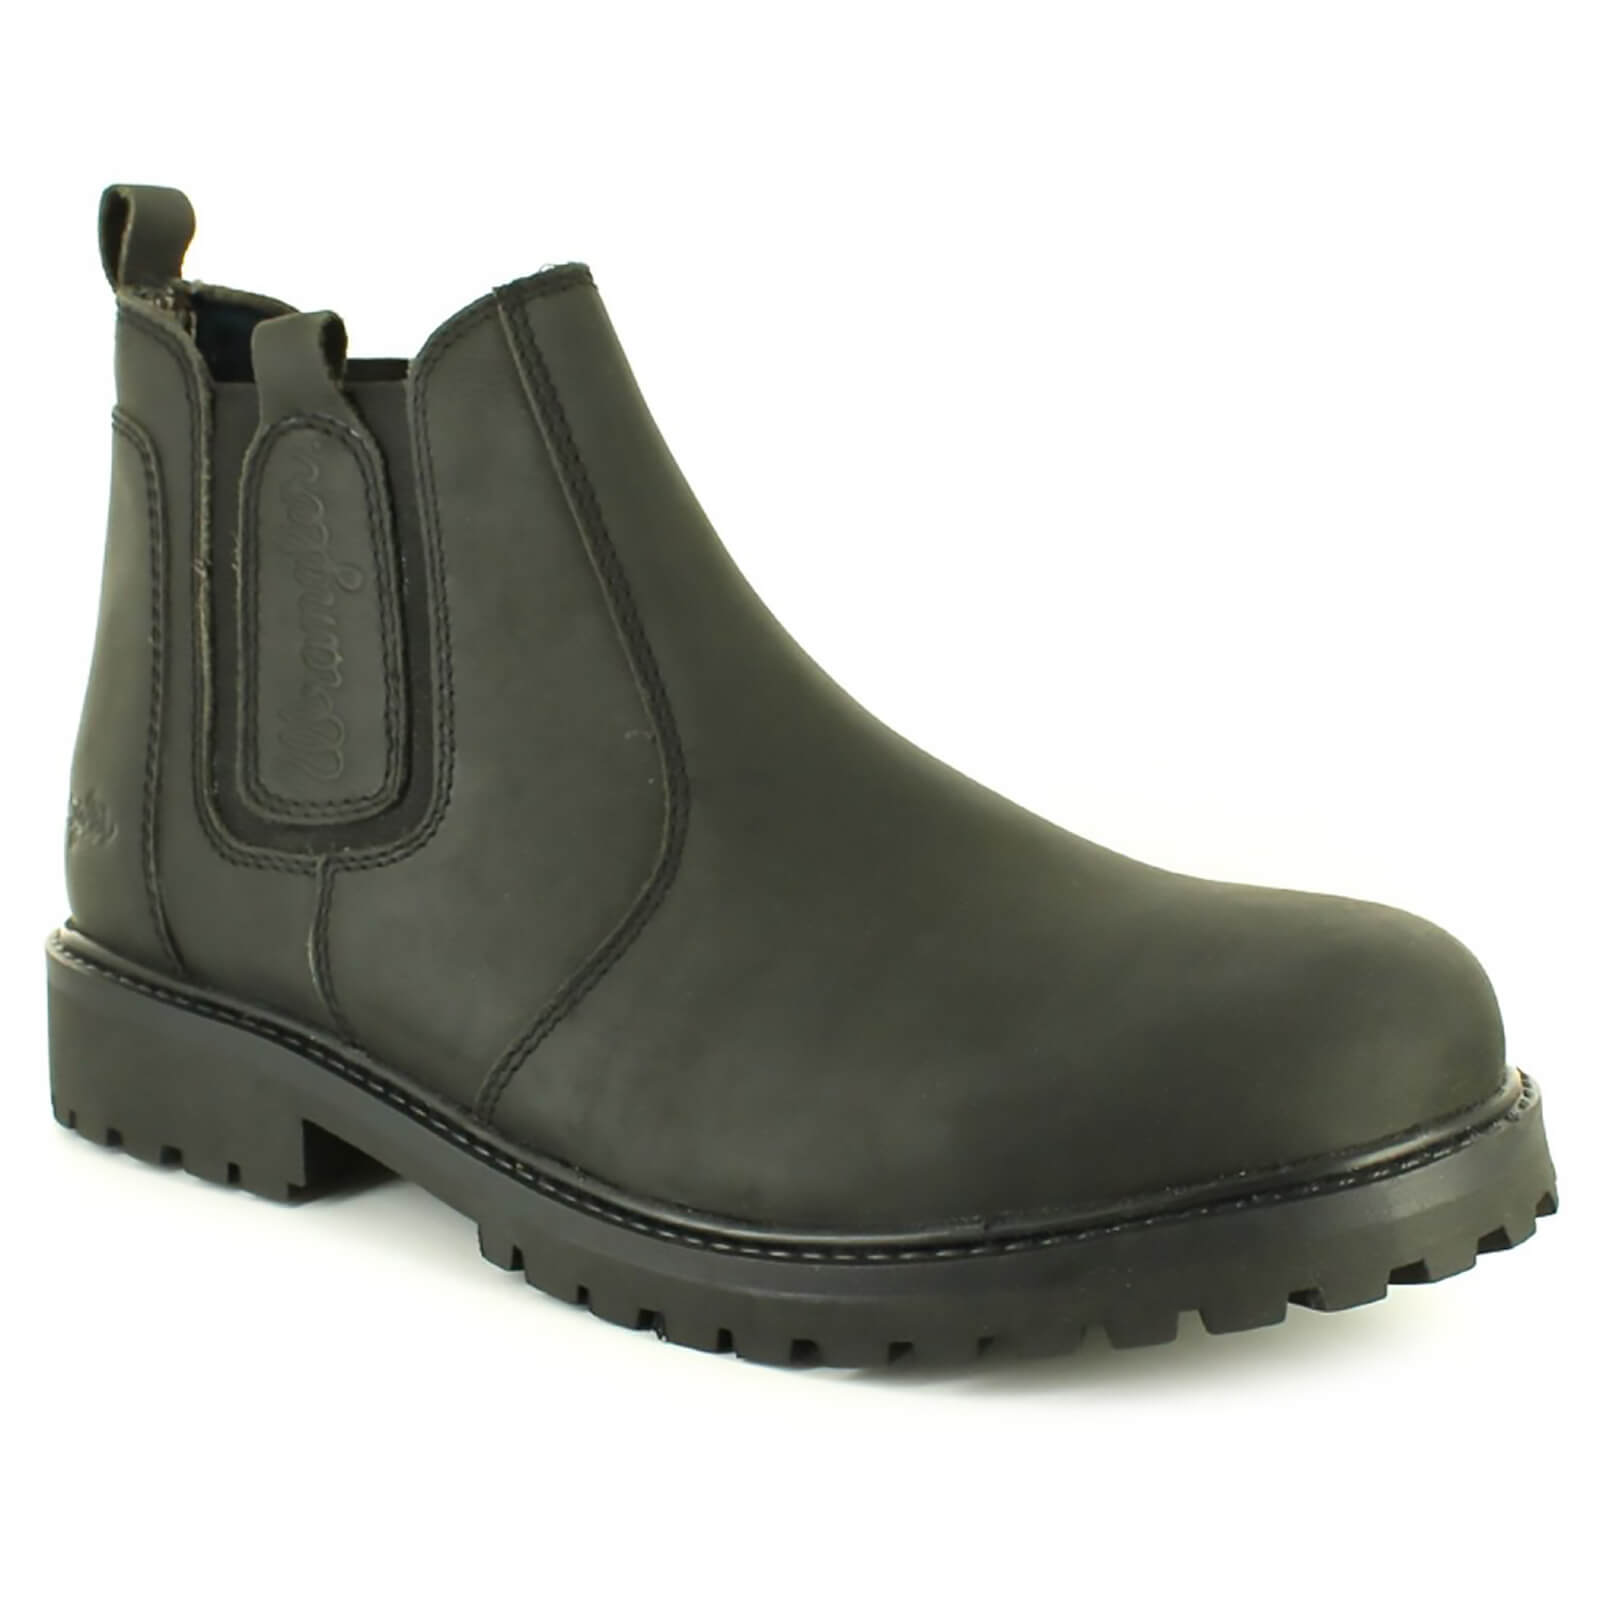 100% genuine shop for luxury first rate Wrangler Men's Yuma Leather Chelsea Boots - Black